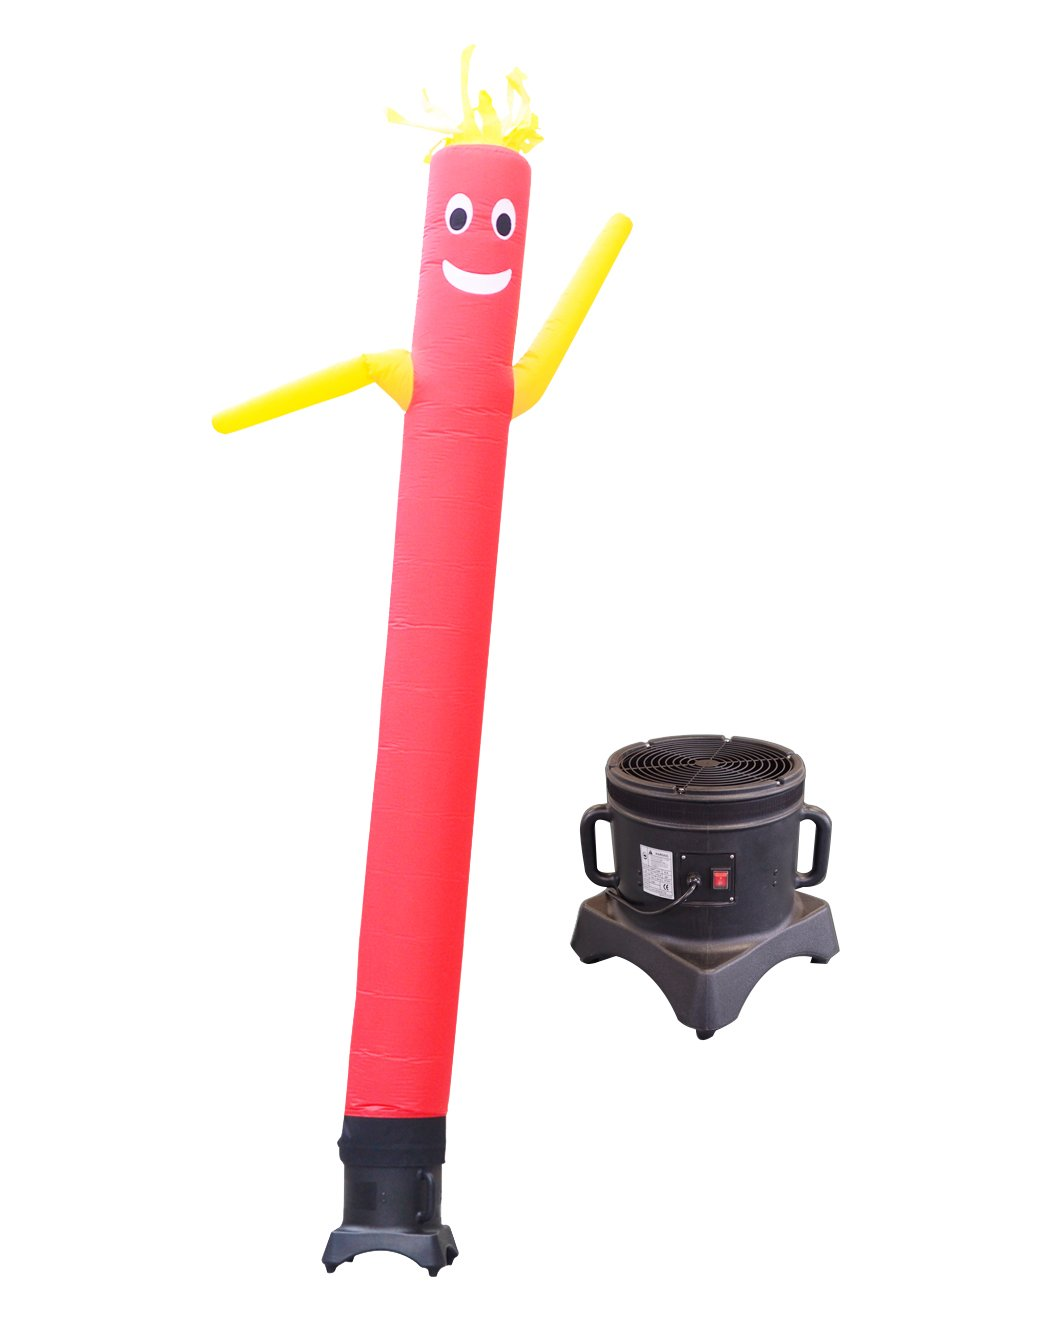 10-Feet LookOurWay Air Dancers Inflatable Tube Man Complete Set with 1//2 HP Weather-Resistant Sky Dancer Blower Red with Yellow Arms